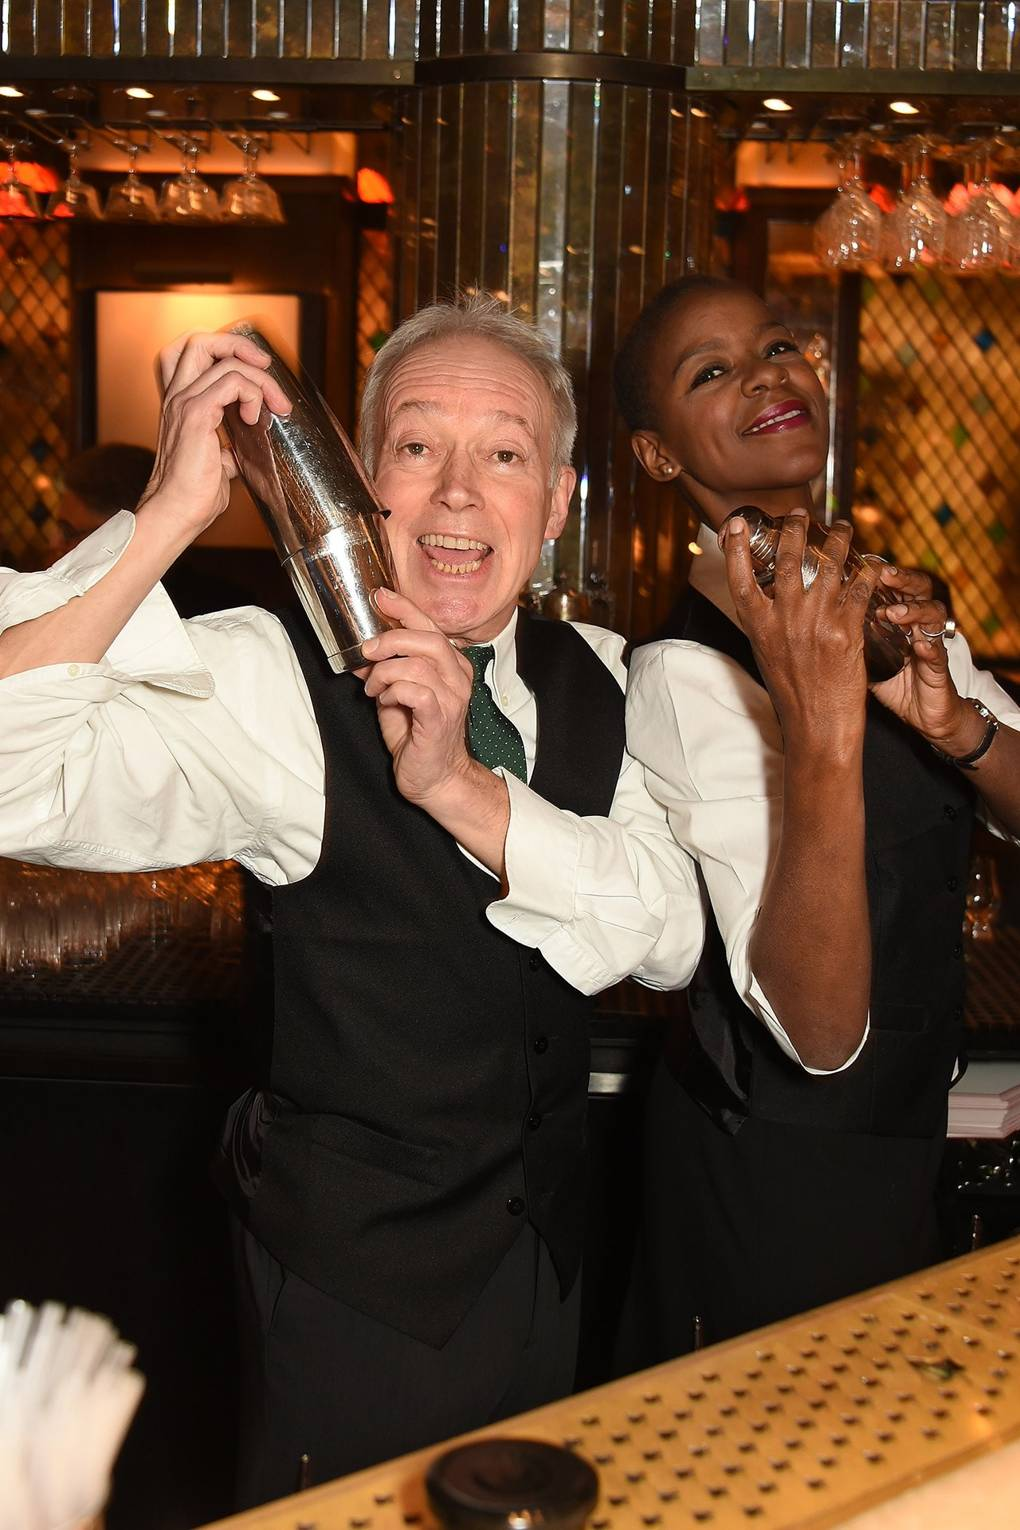 b5163f8035205a One Night Only at the Ivy evening with Sir Derek Jacobi